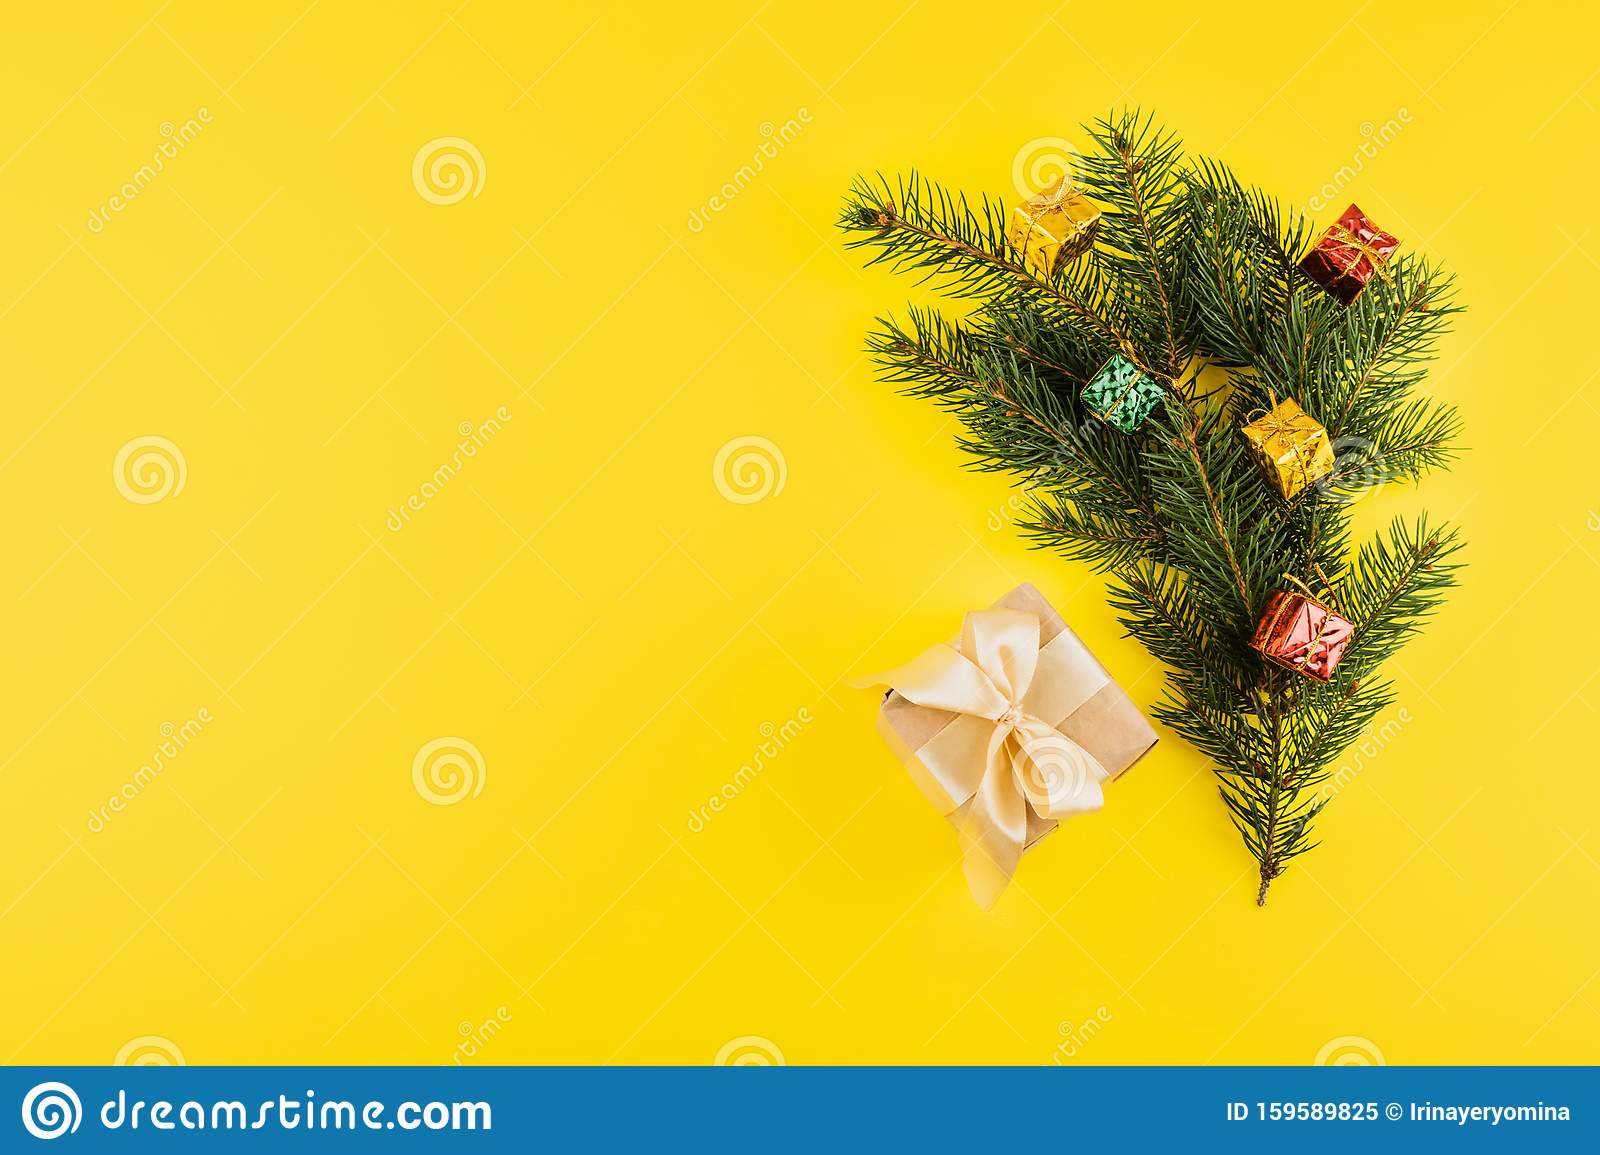 Christmas composition with Conifer Evergreen tree branches and gift box on yellow background. Christmas and 2020 new year minimal